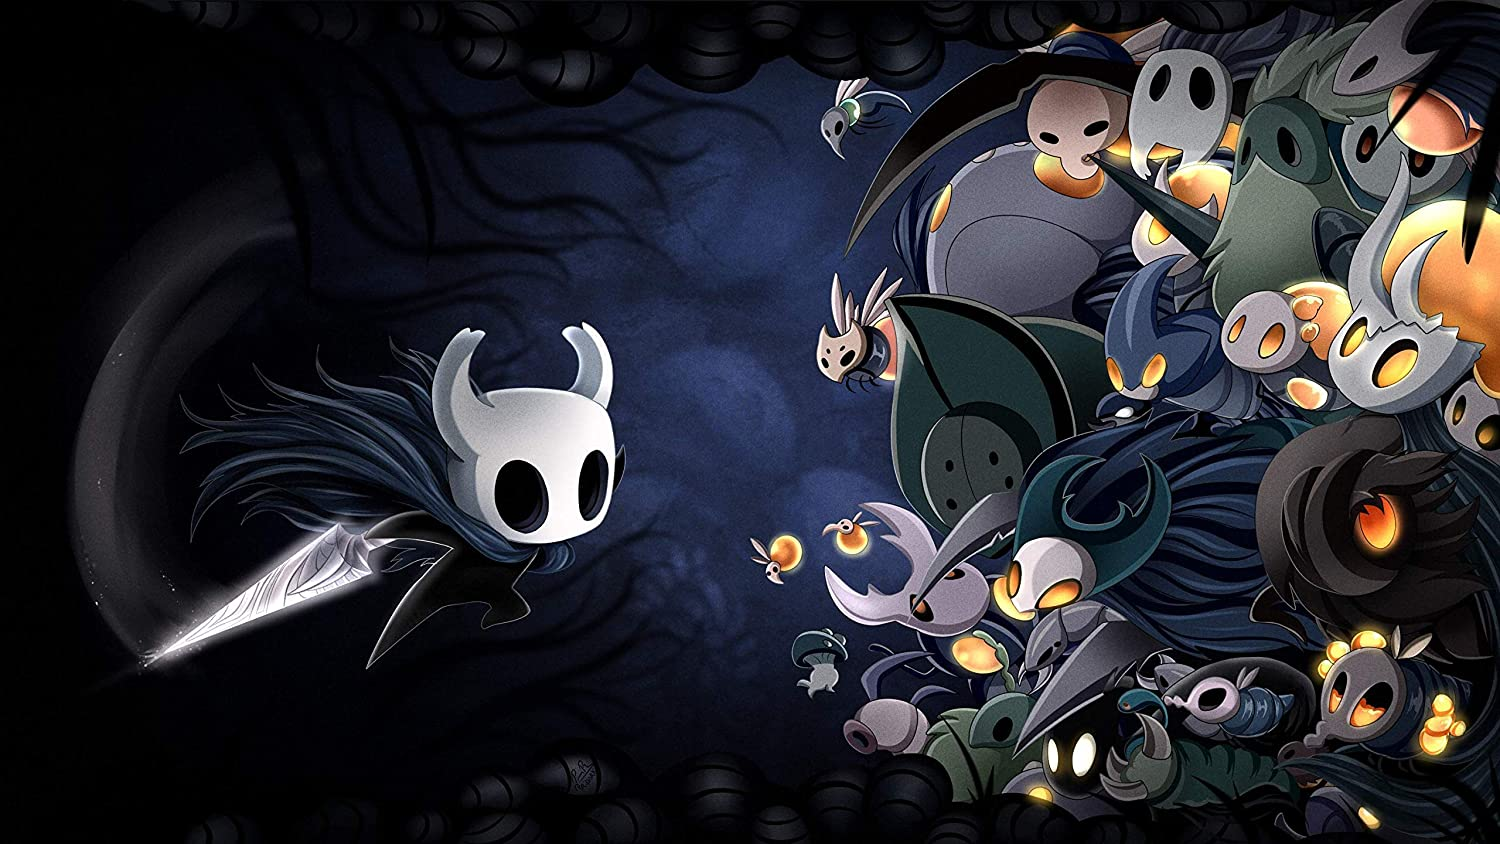 Hollow Knight poster digital wall art merchandise for gifts and room decor